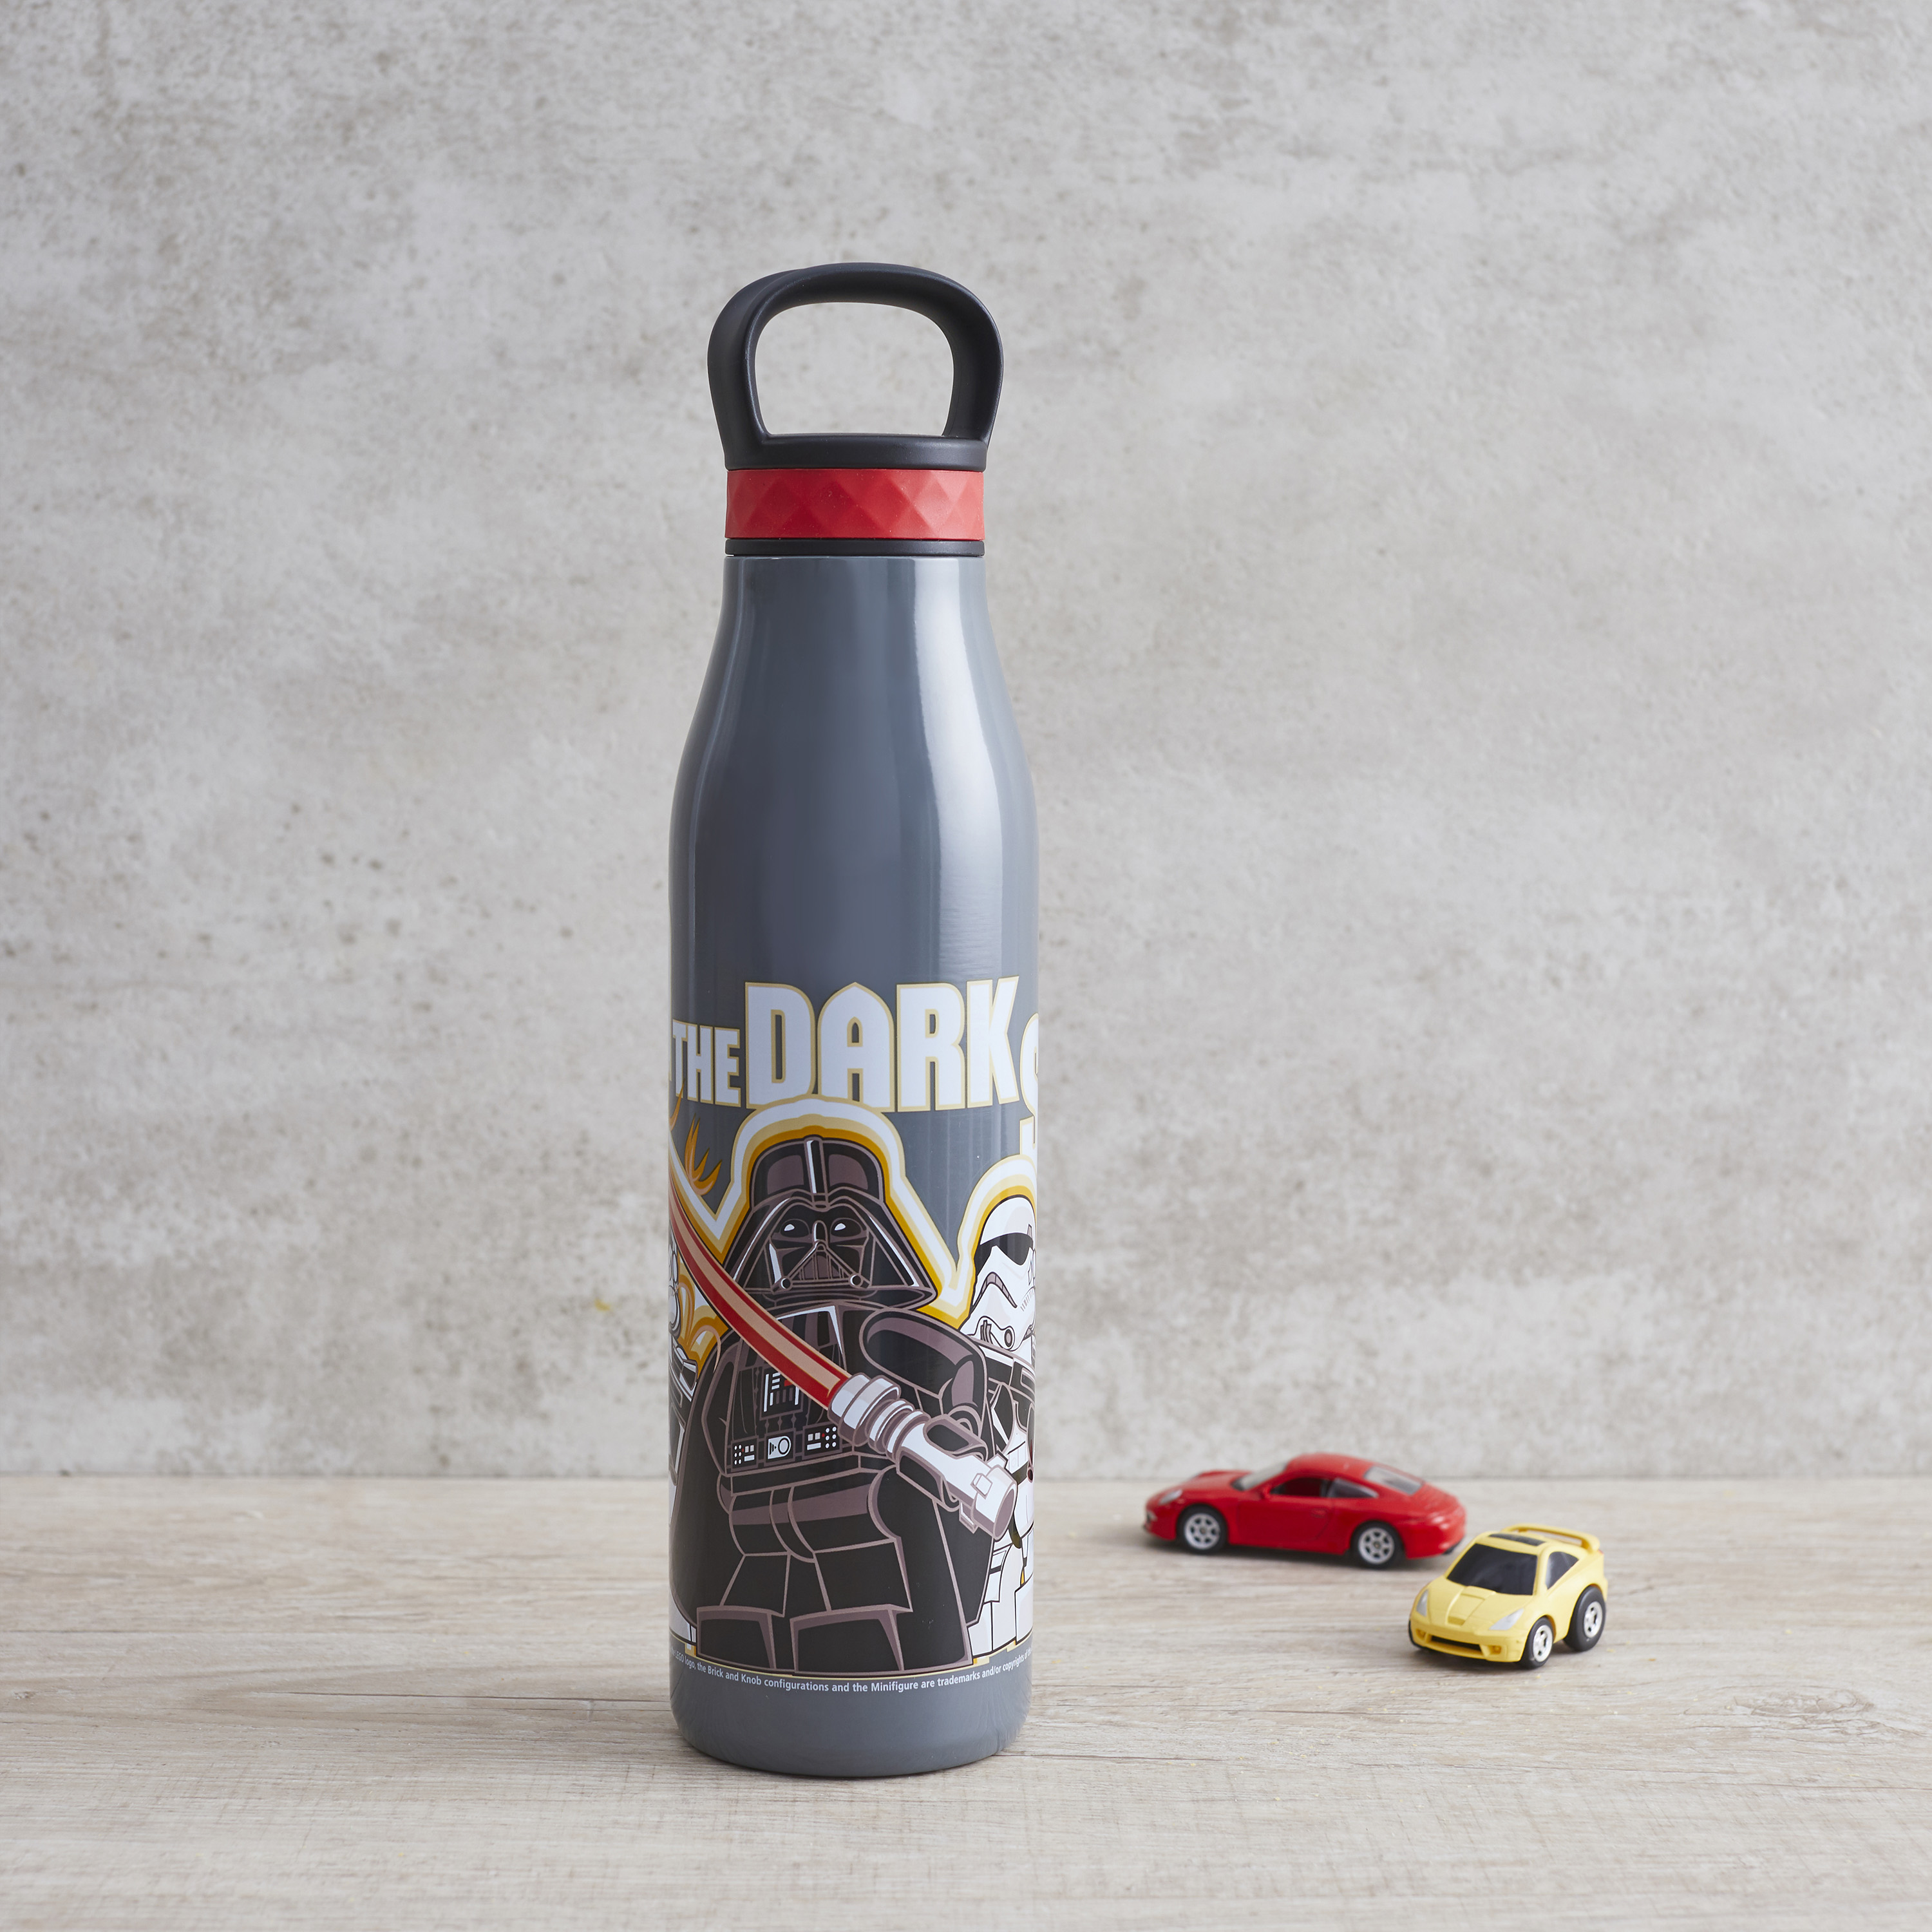 Lego Star Wars 20 ounce Stainless Steel Vacuum Insulated Water Bottle, Darth Vader and Stormtroopers slideshow image 3